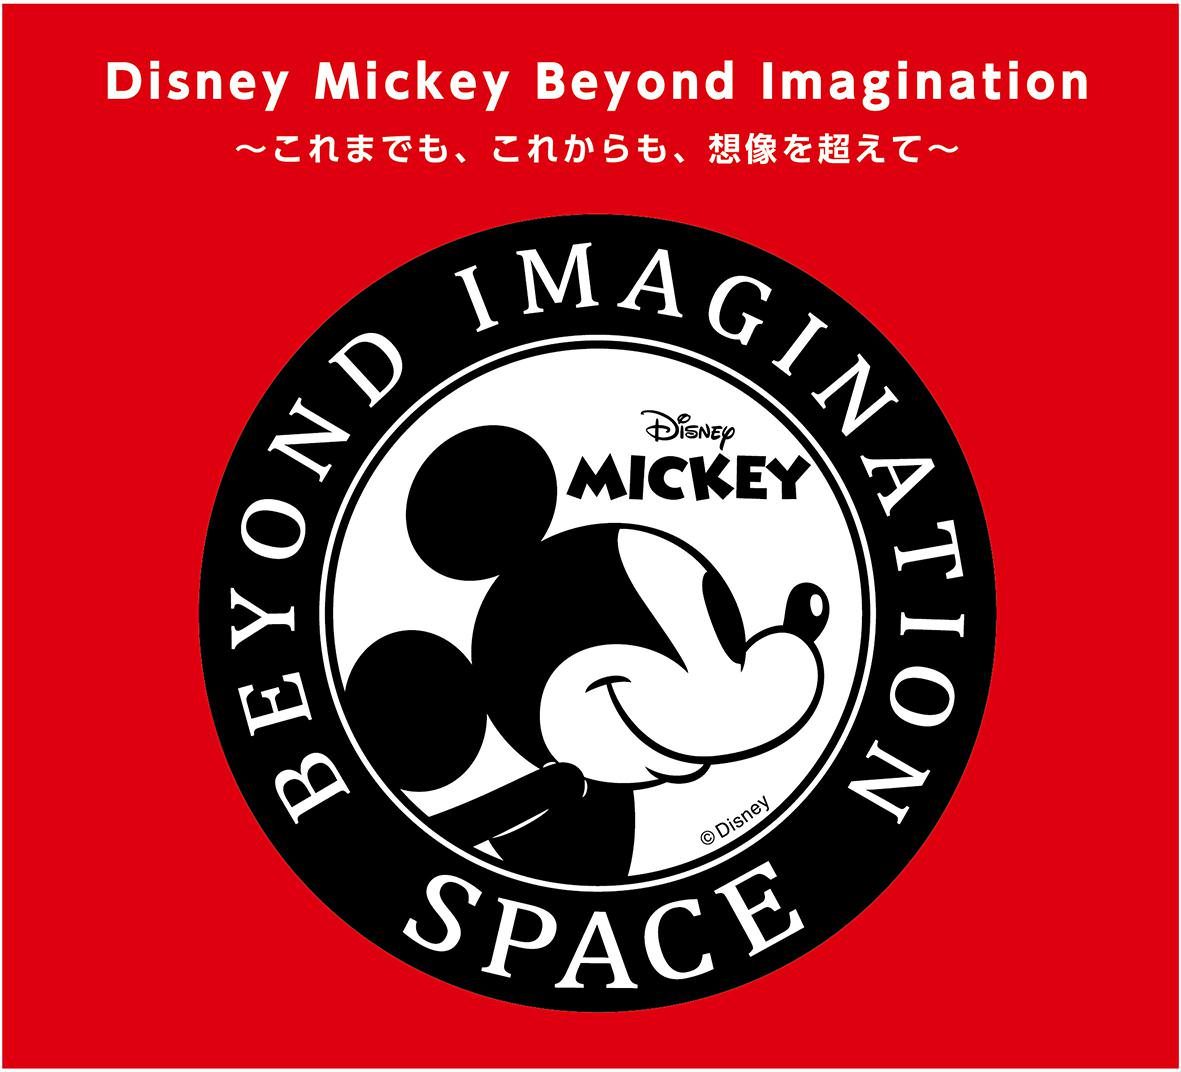 「Disney Mickey Beyond Imagination SPACE」